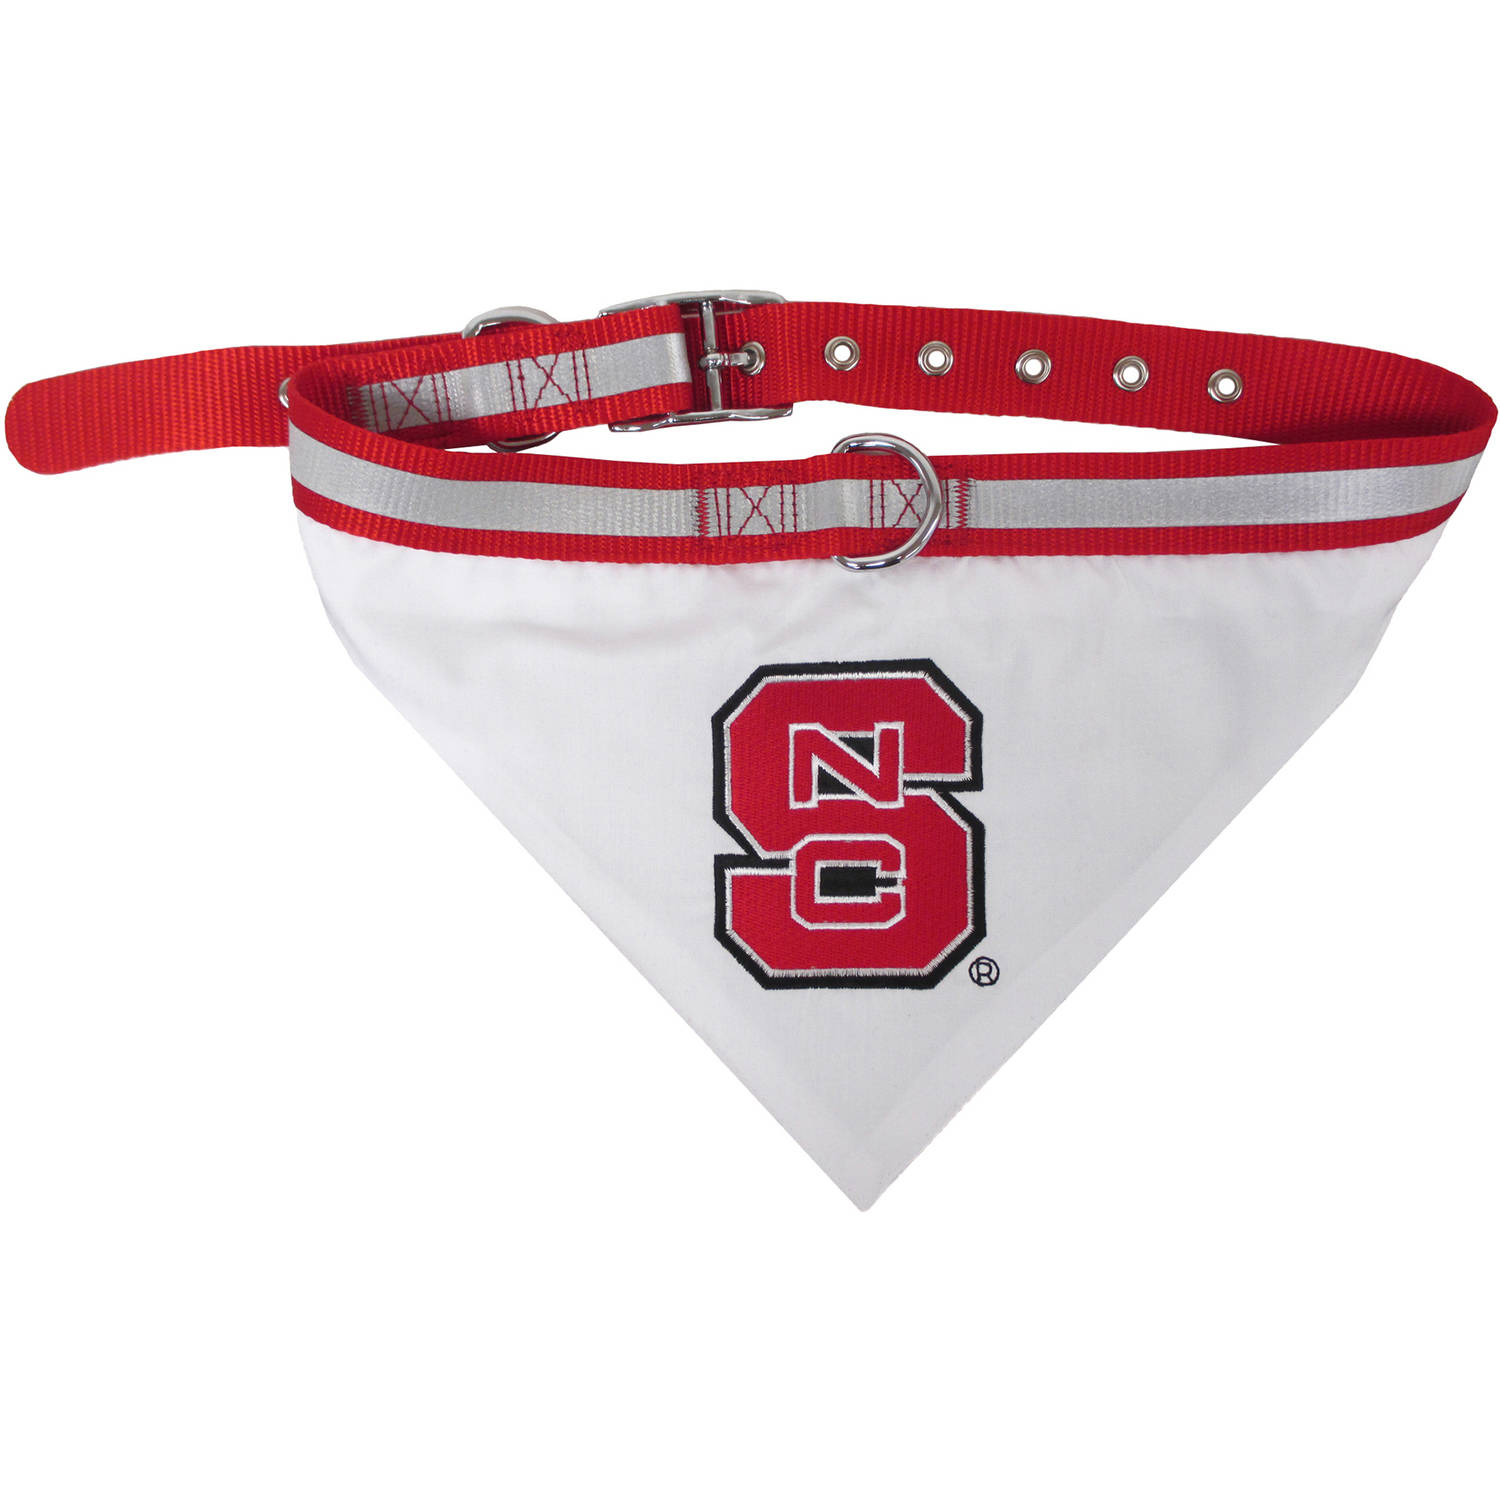 Pets First College NC State Wolfpack Pet Bandana, 3 Sizes Available. With Collar